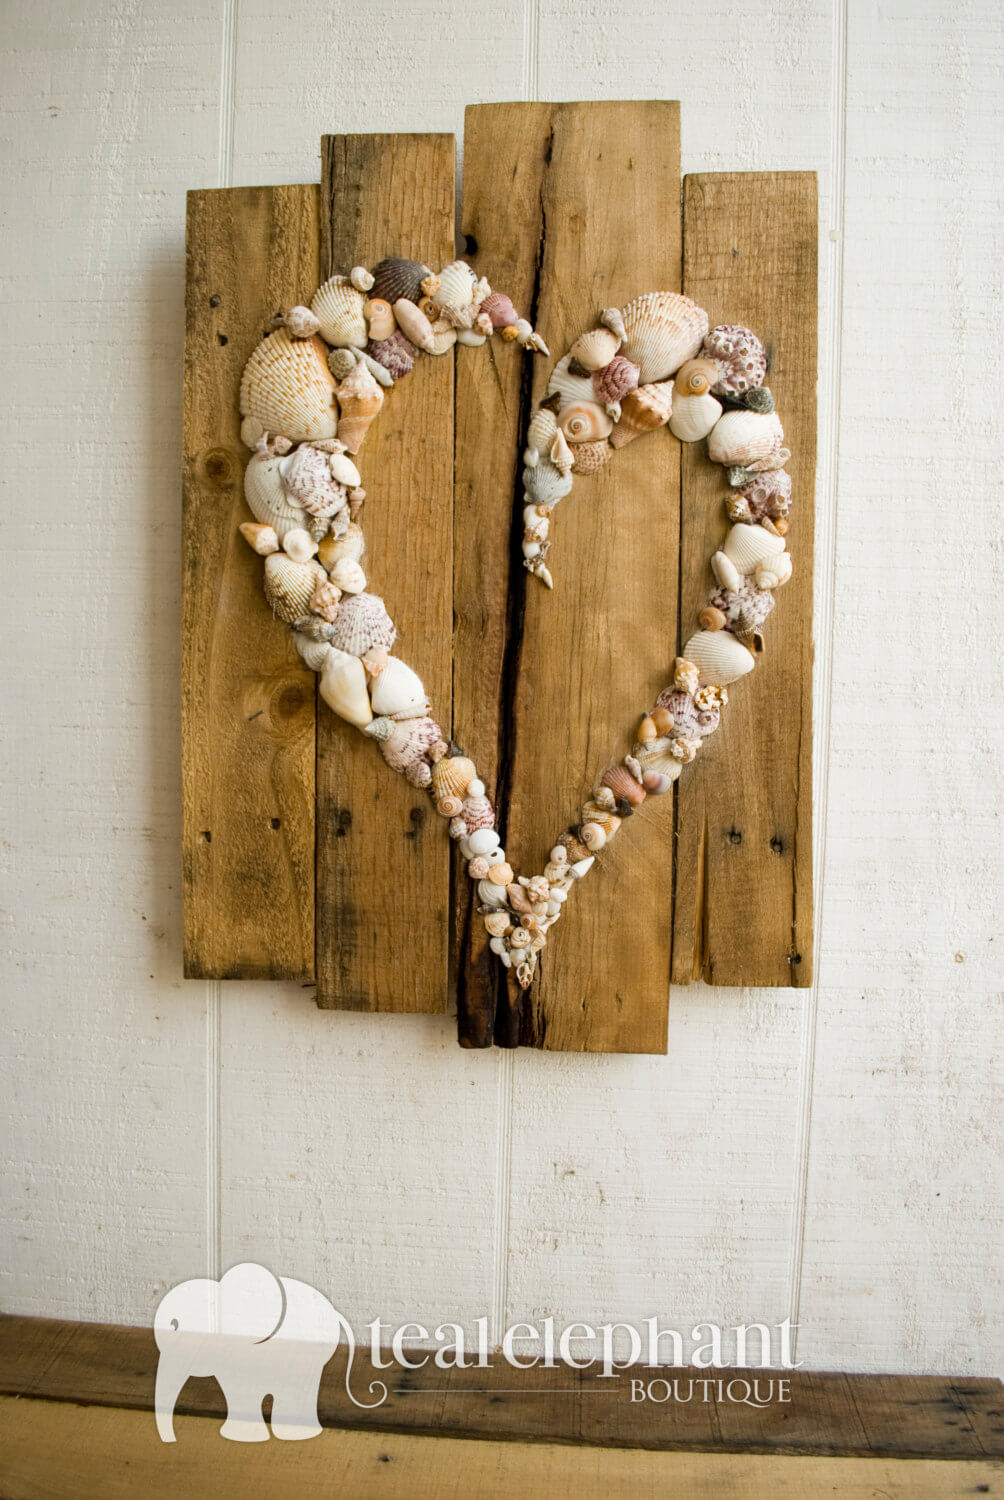 Heart-Shaped Shell Design on a Driftwood Background